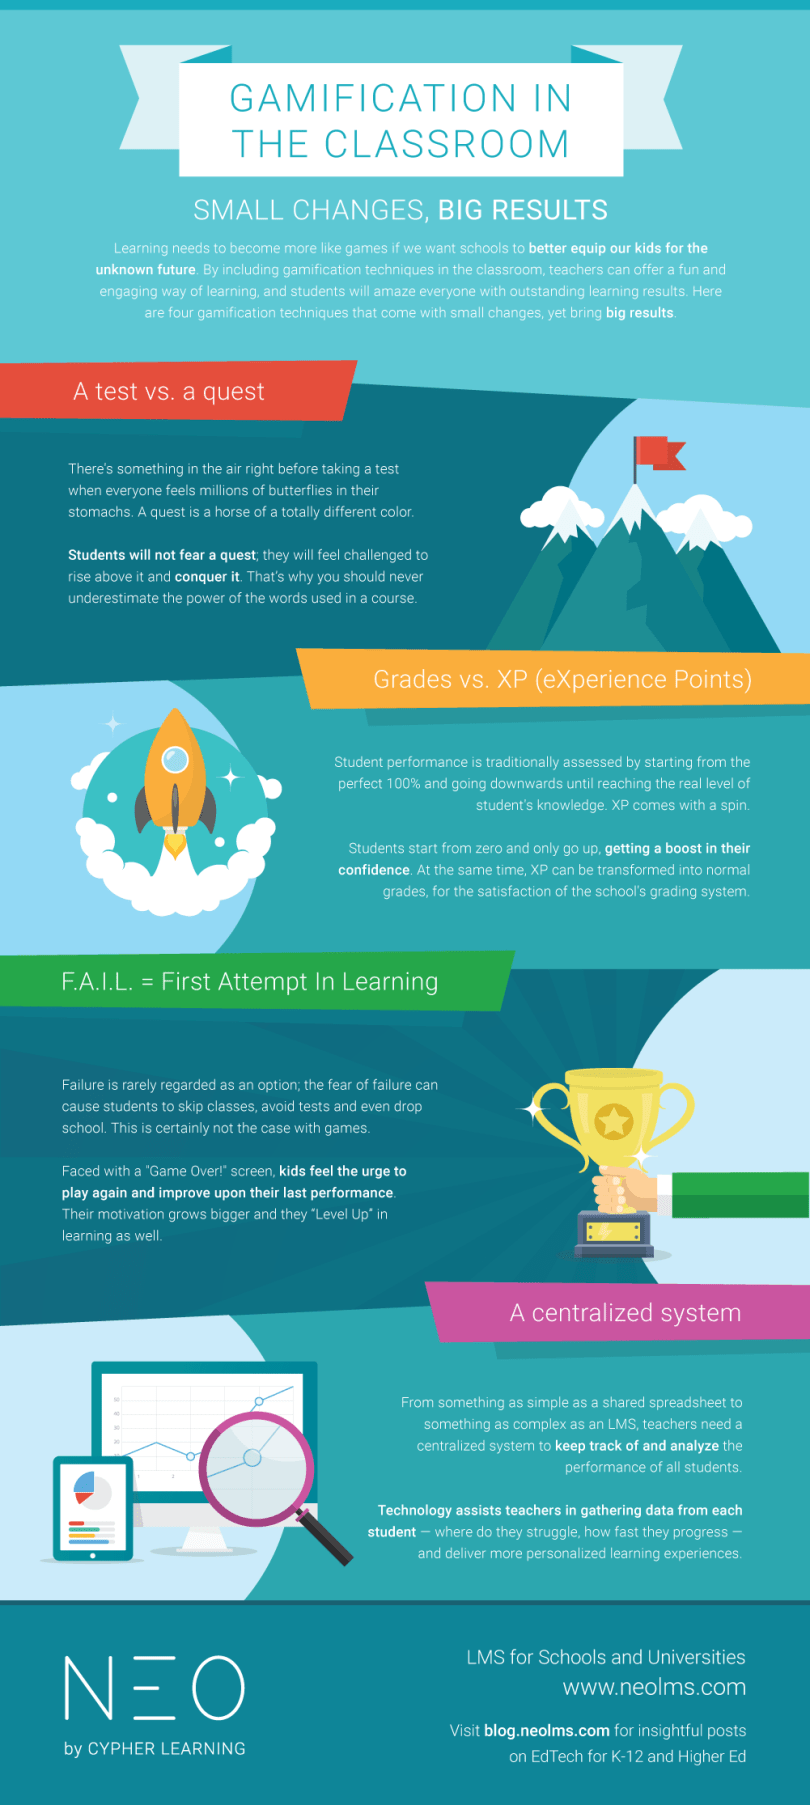 Gamification in the classroom: small changes and big results INFOGRAPHIC